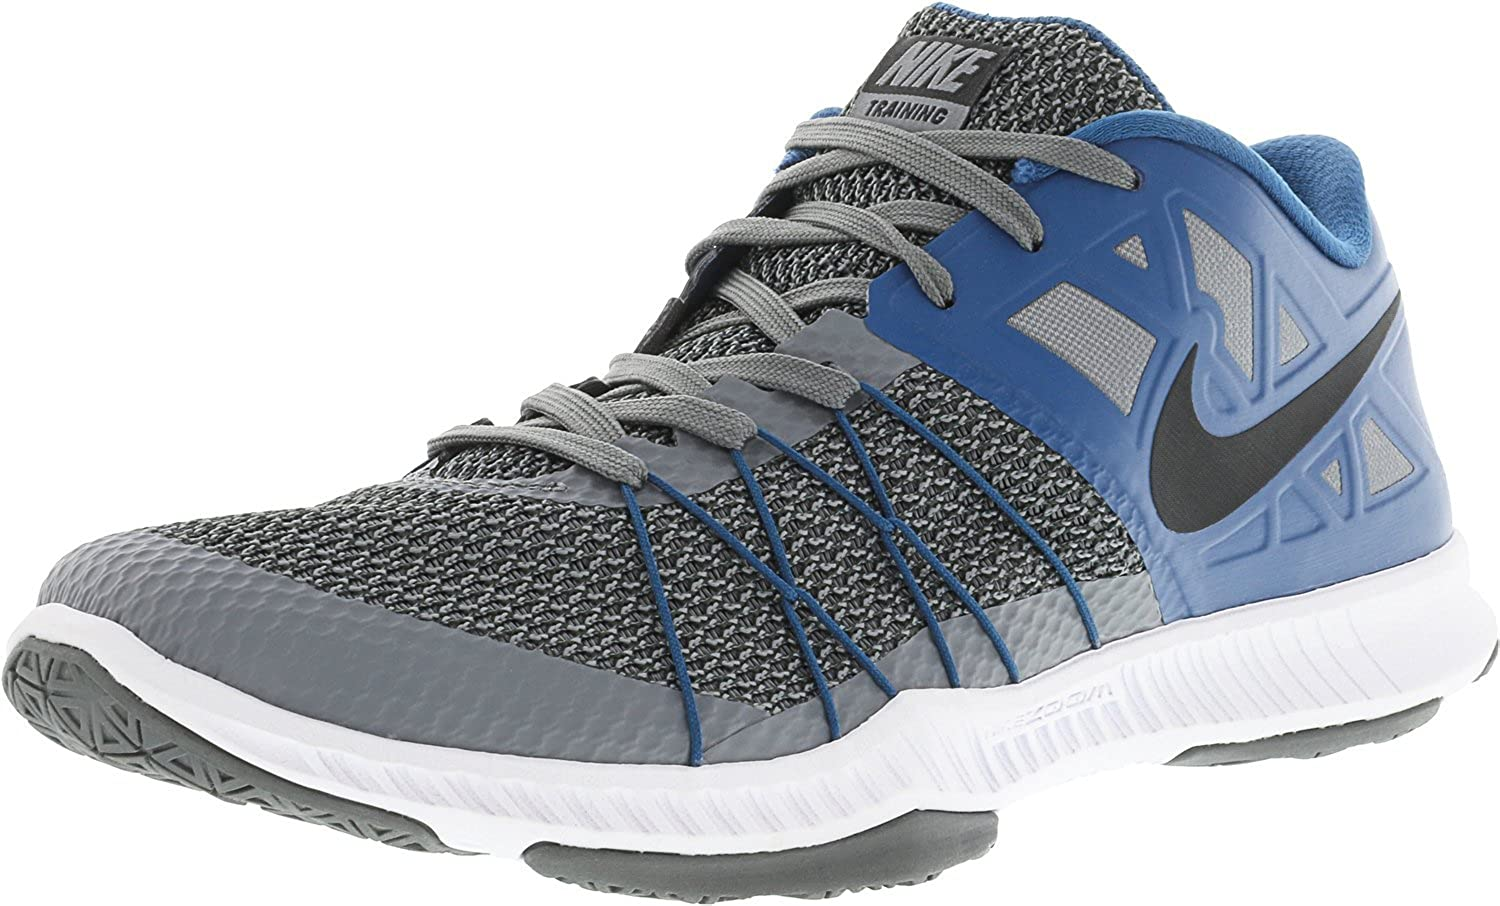 Discount Nike Zoom Train Incredibly Fast Size 5 Cool Grey